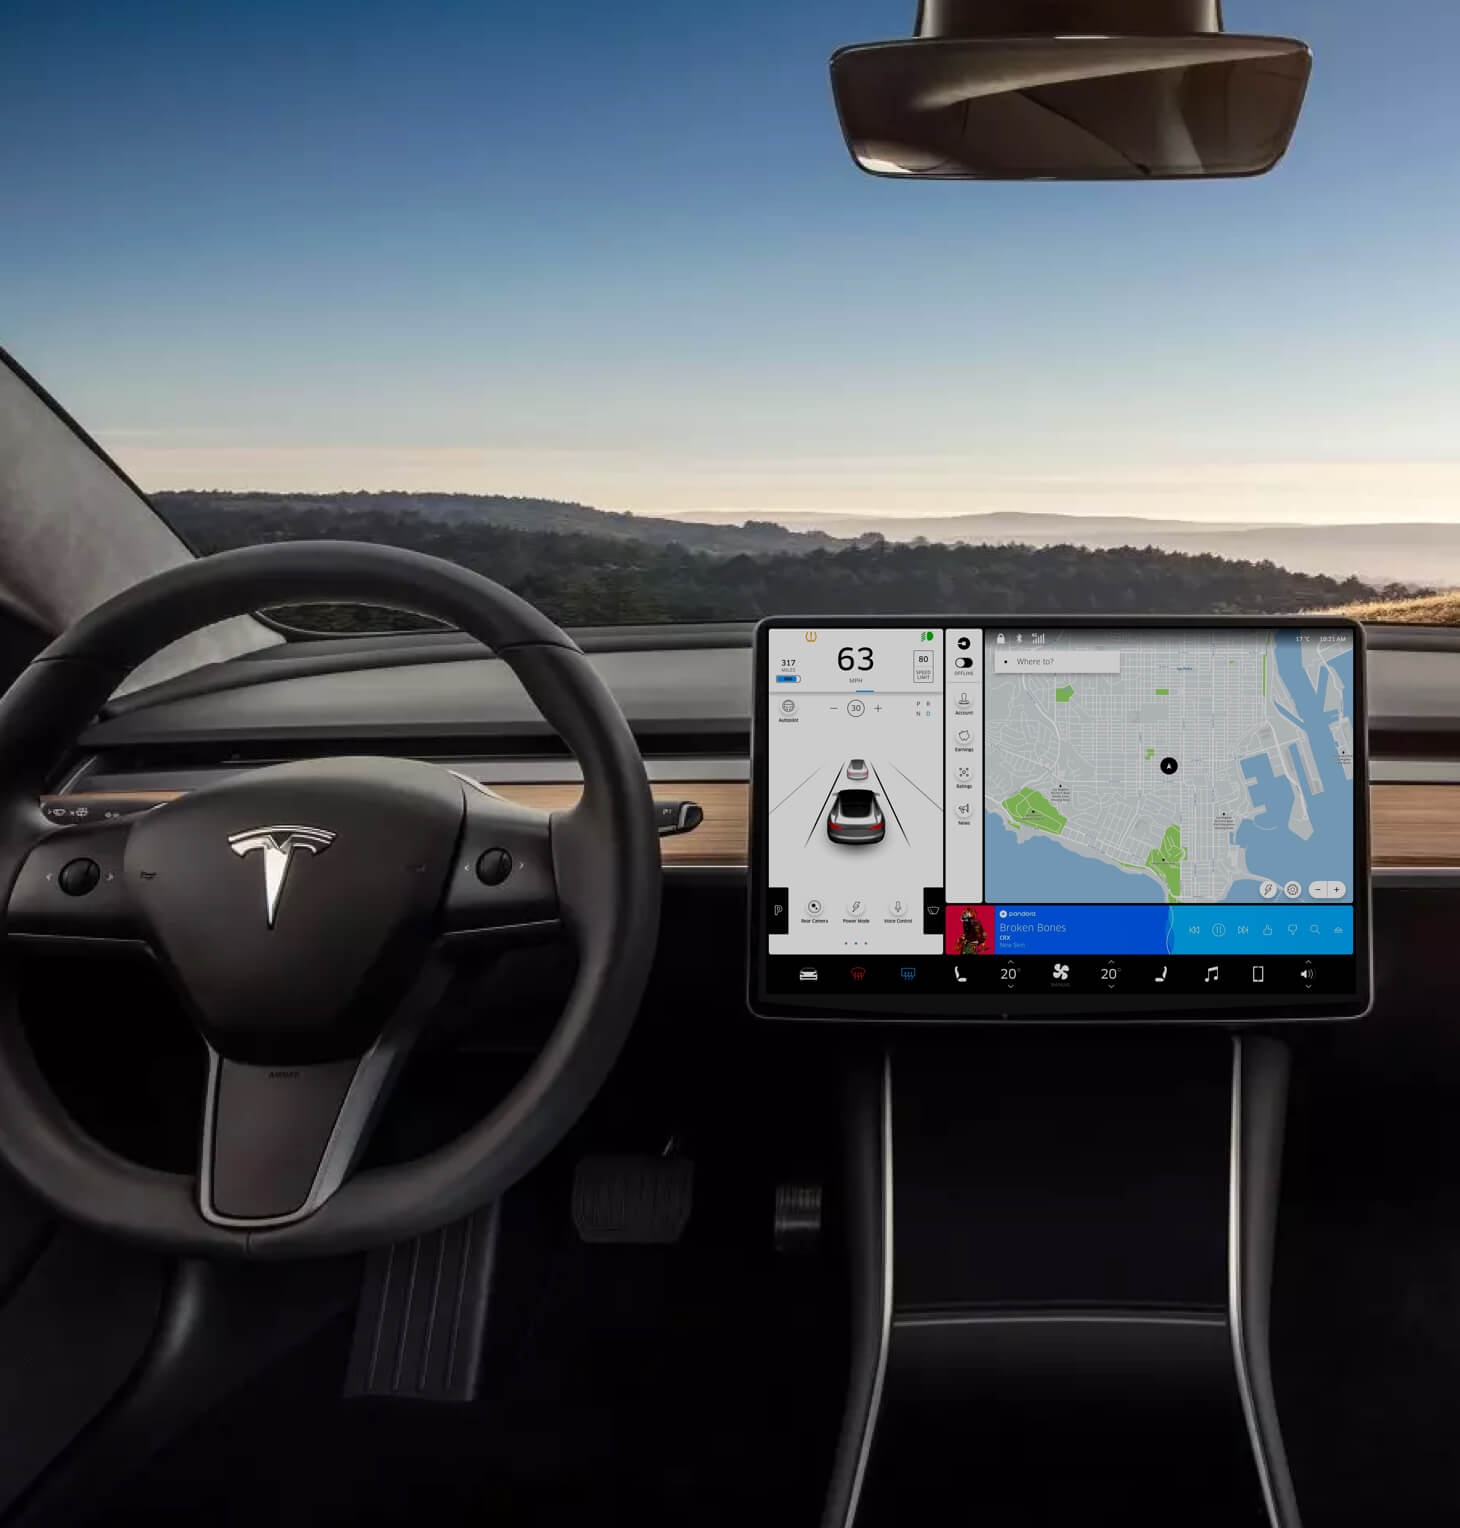 Thumbnail of the Tesla x Uber project